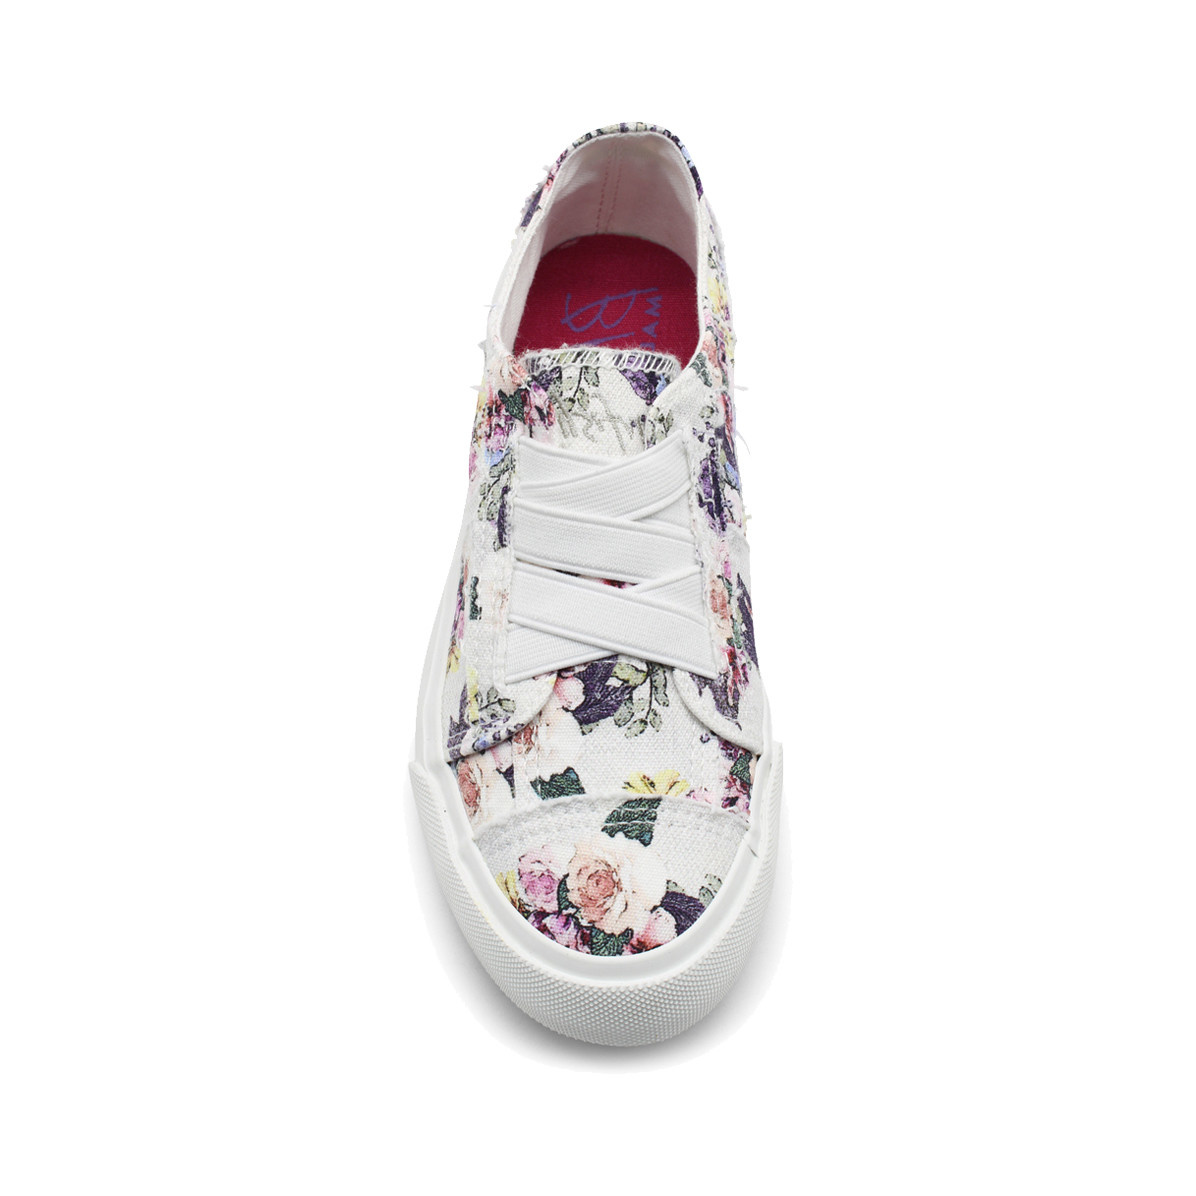 Blowfish Malibu Blowfish Child Marley Off White Floral